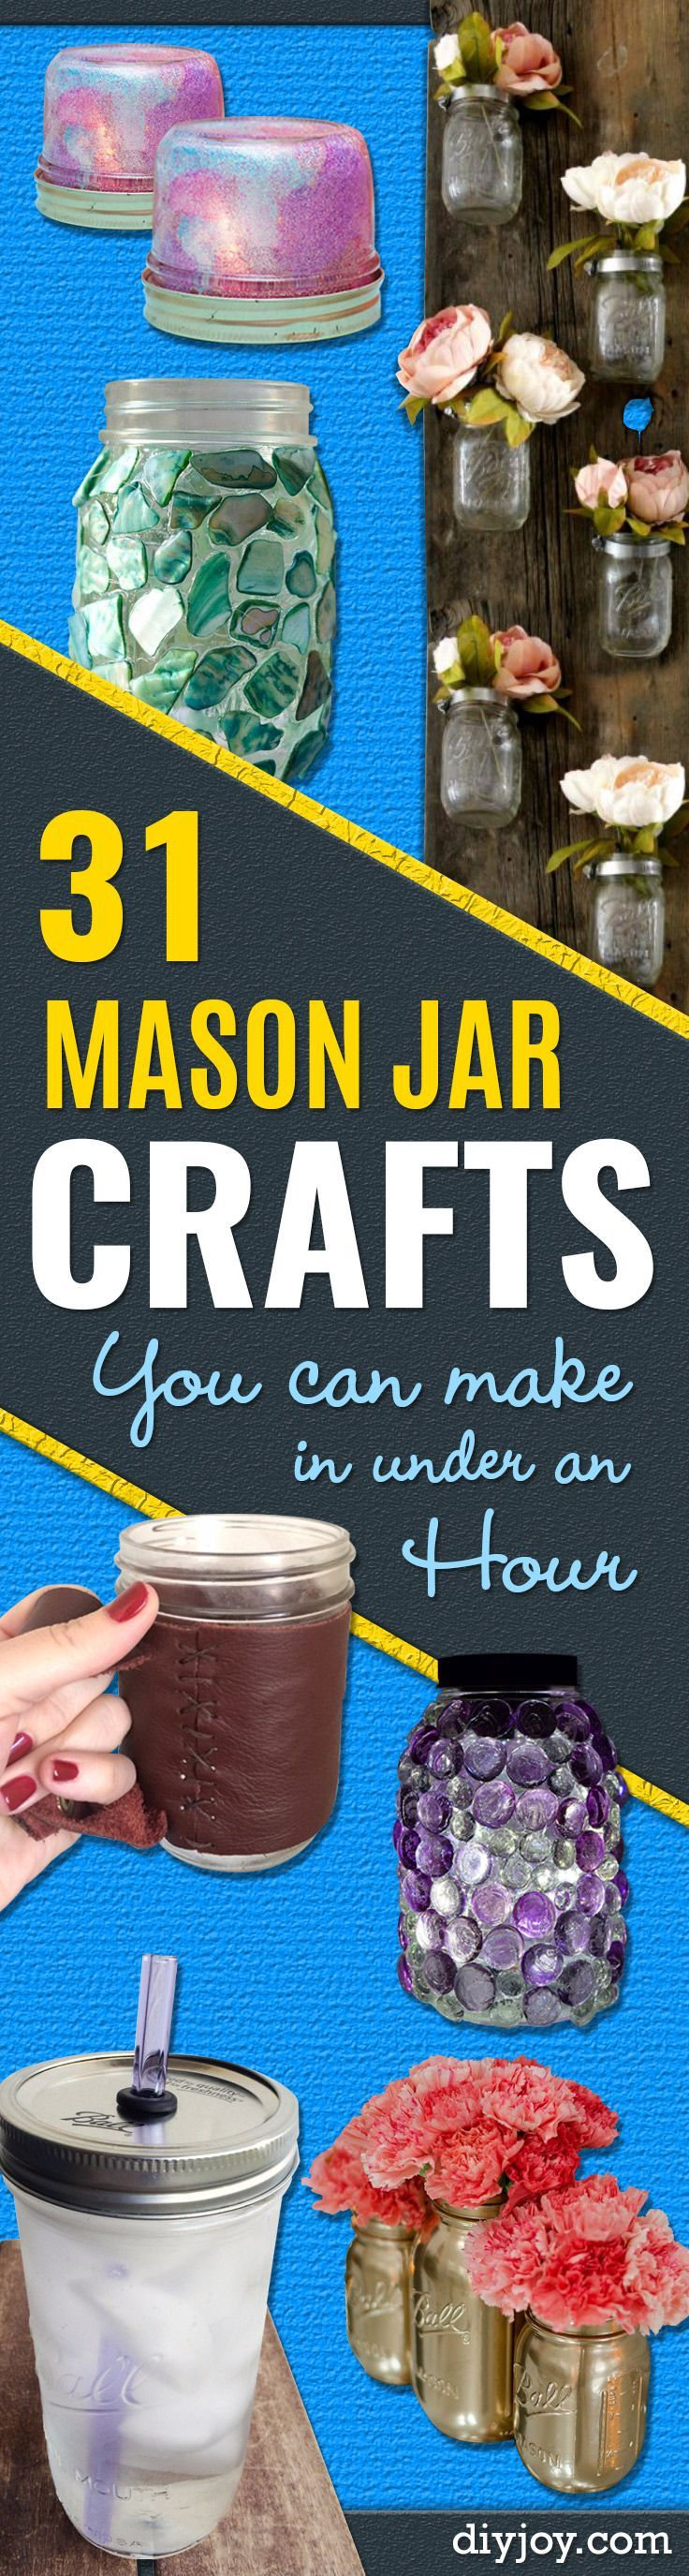 best crafts gifts homemade images on pinterest gift ideas